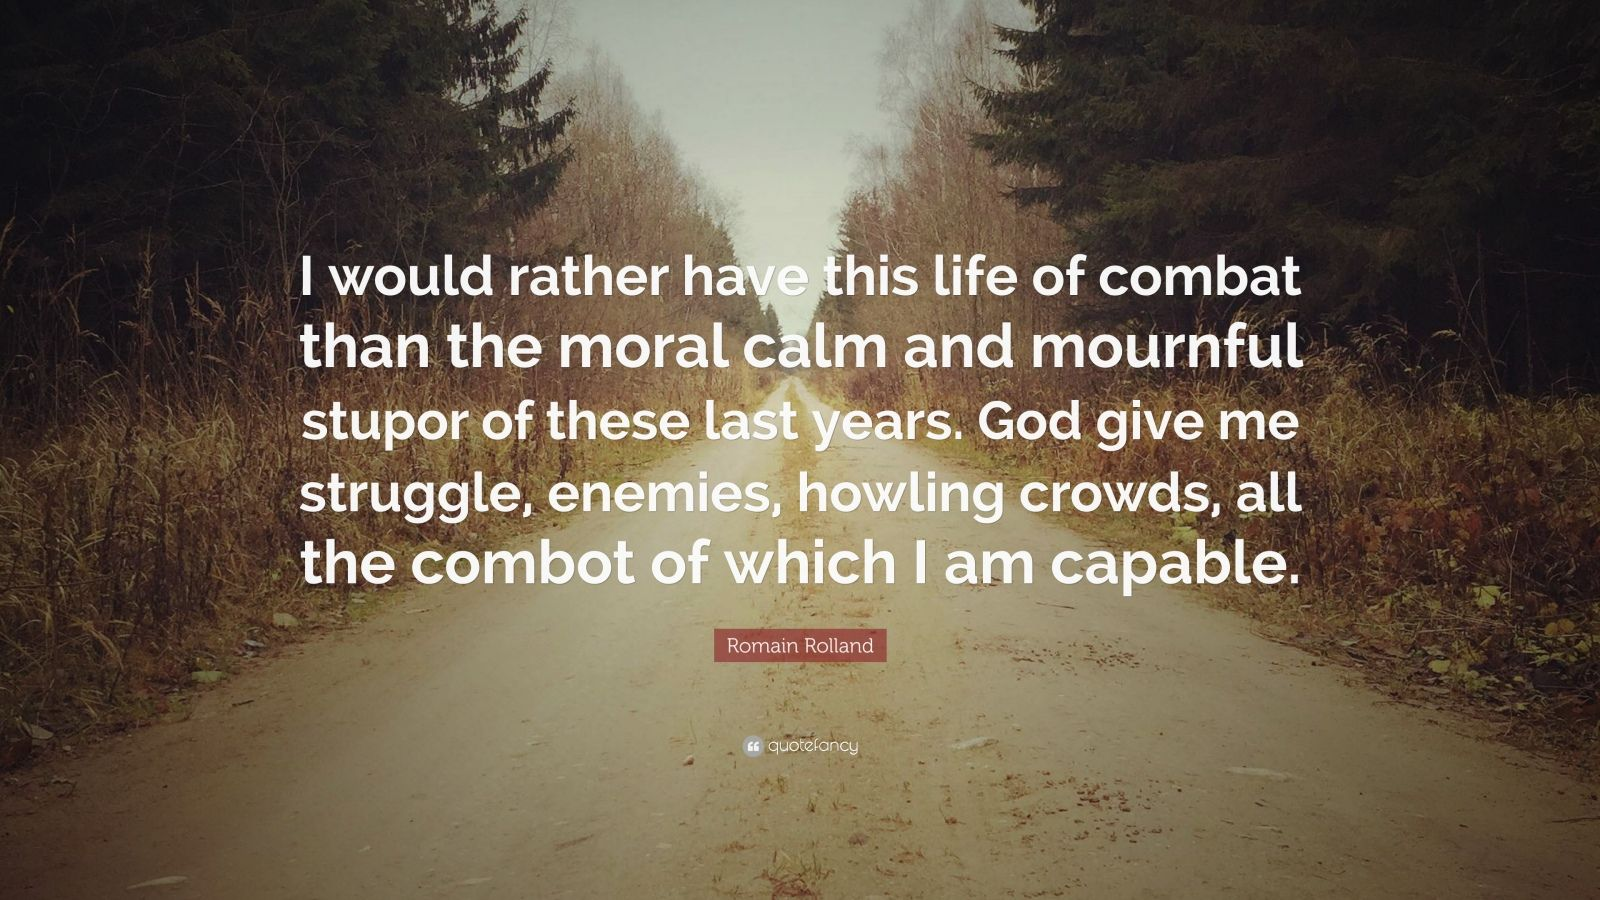 """Romain Rolland Quote: """"I would rather have this life of combat than the moral calm and mournful stupor of these last years. God give me struggle, enemies, howling crowds, all the combot of which I am capable."""""""